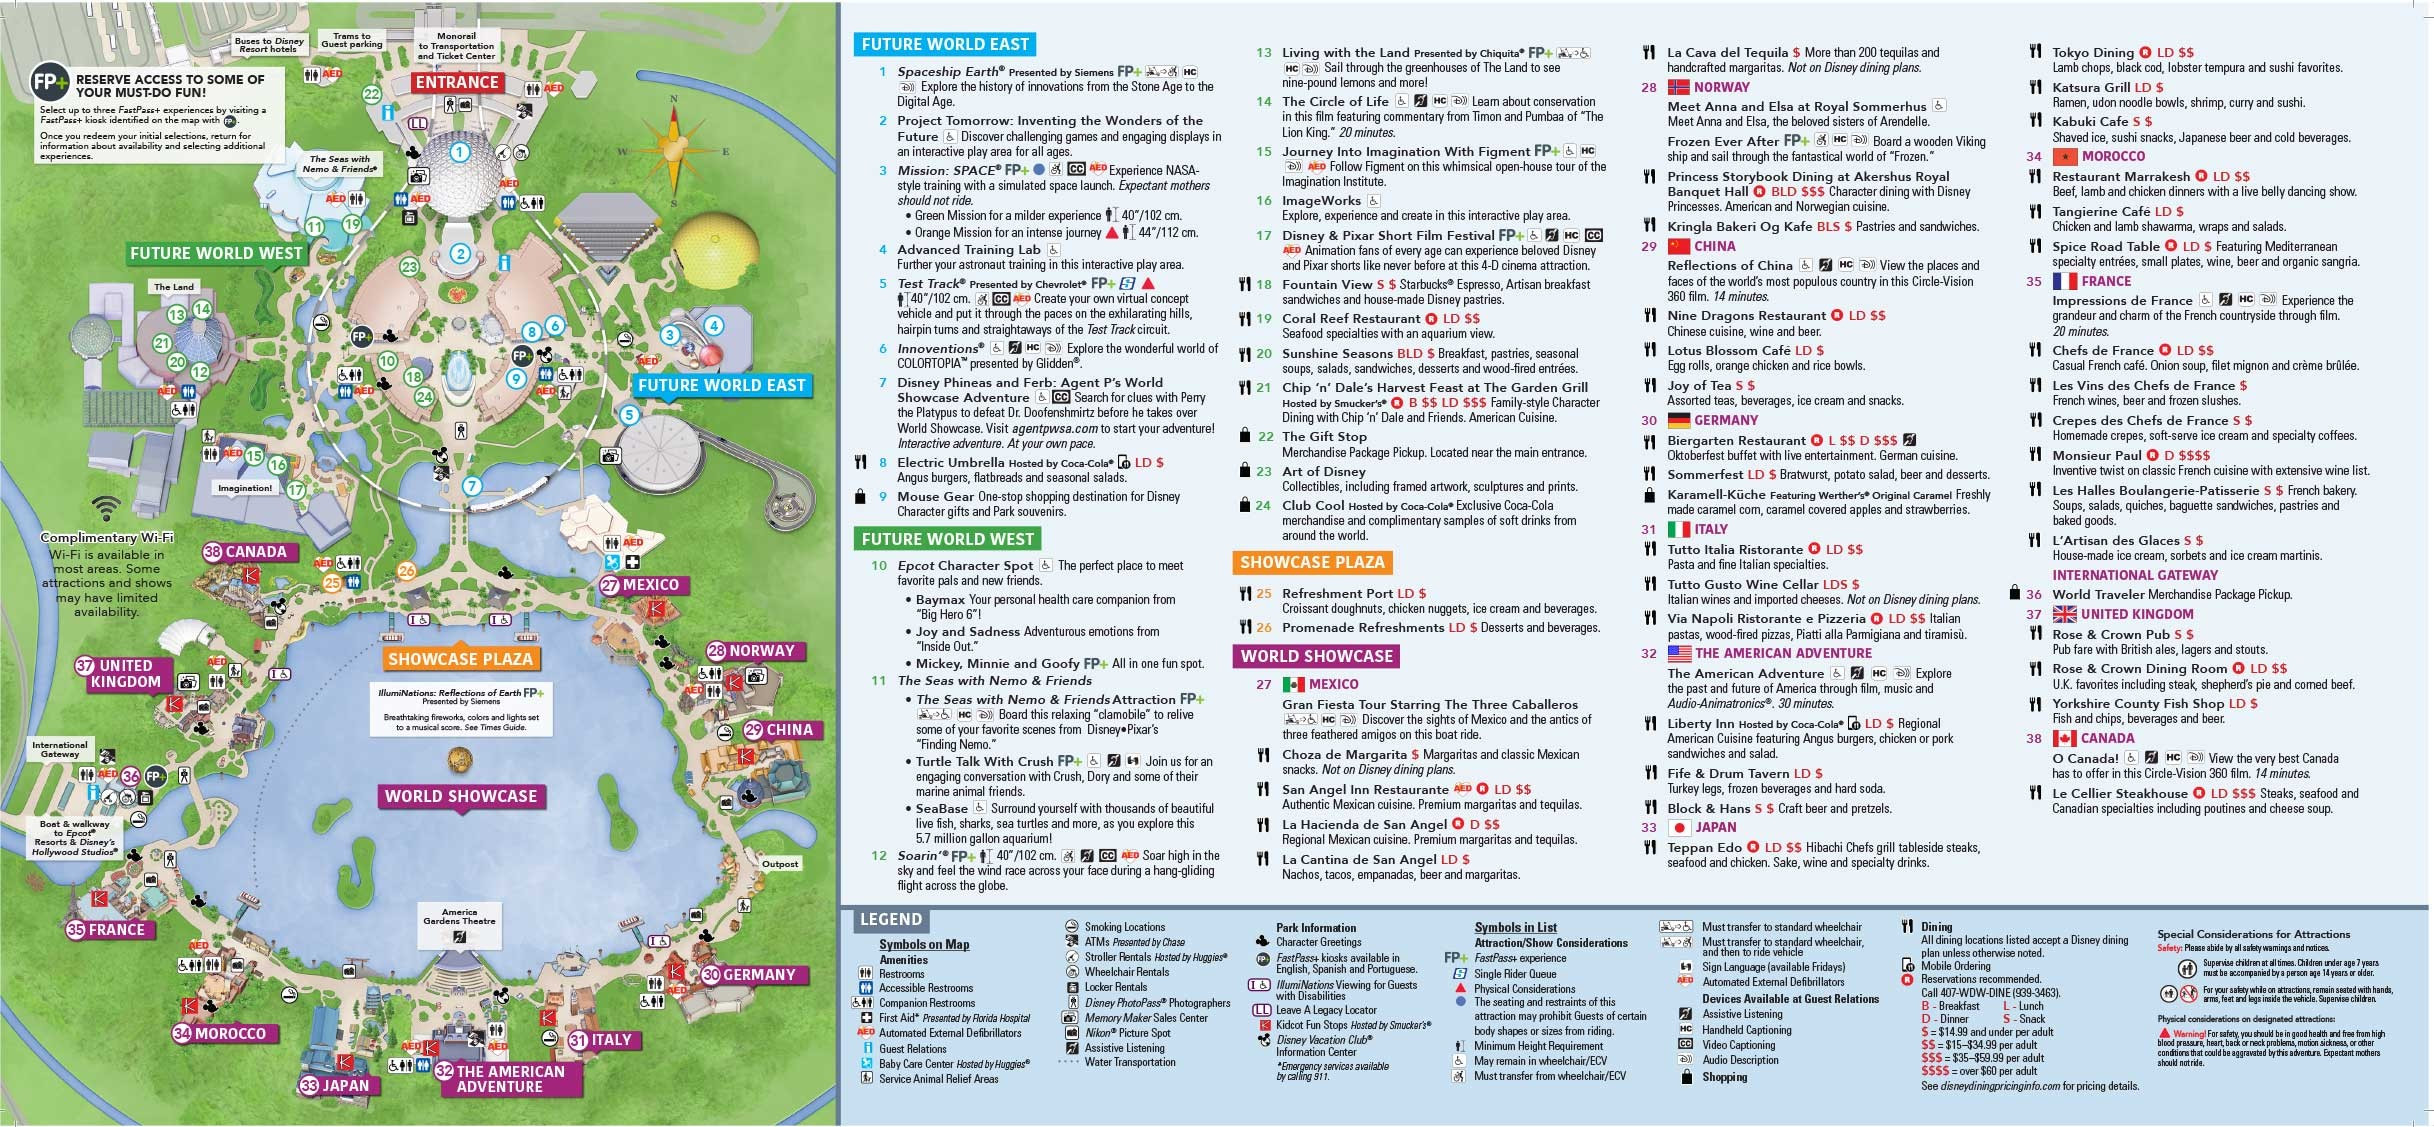 Printable Epcot Map 2018 Luxury Epcot Map World Showcase Awesomebryner